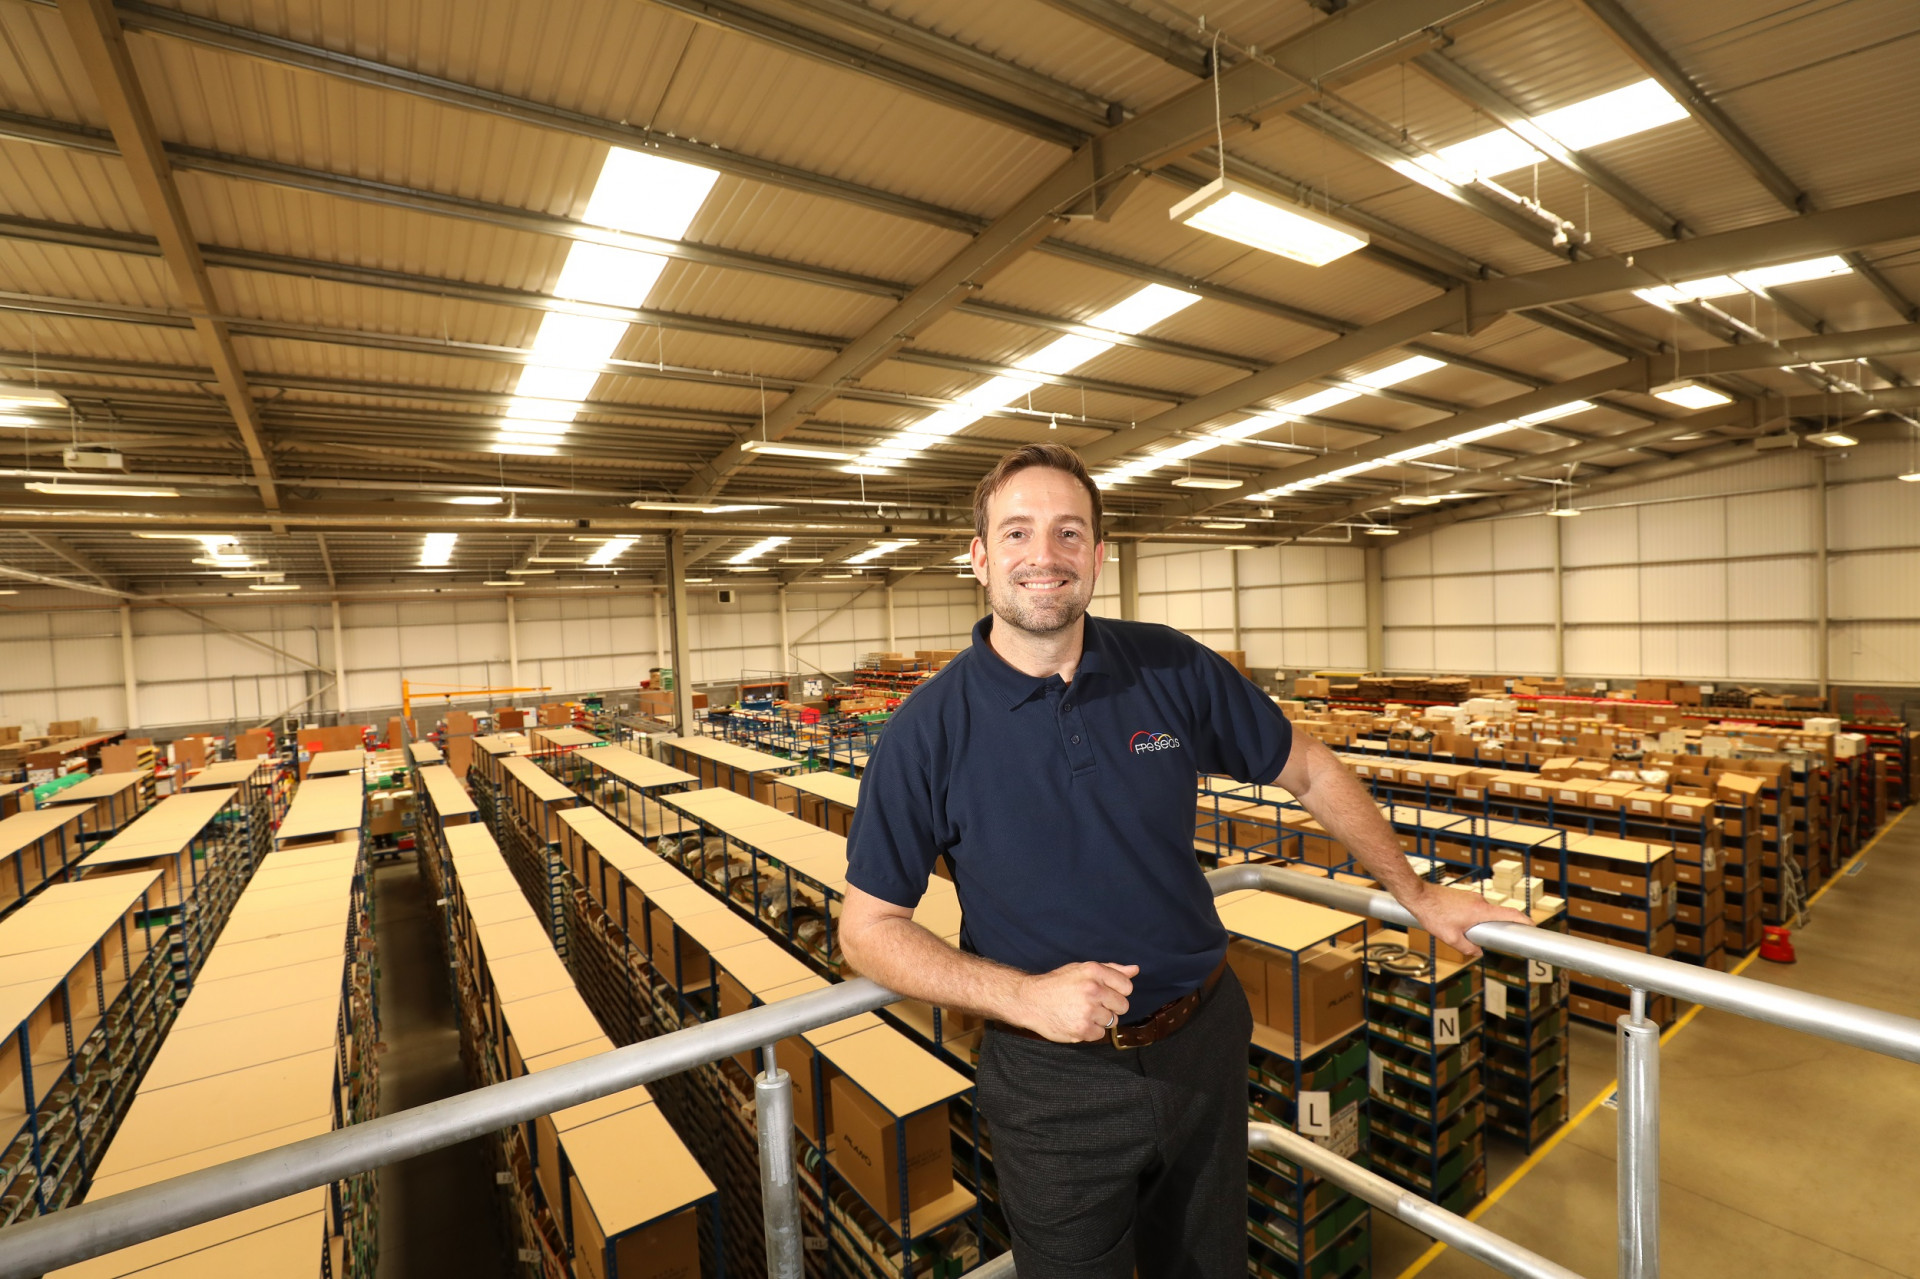 Steve Ellis, Managing Director, FPE Seals taken at their Darlington distribution centre